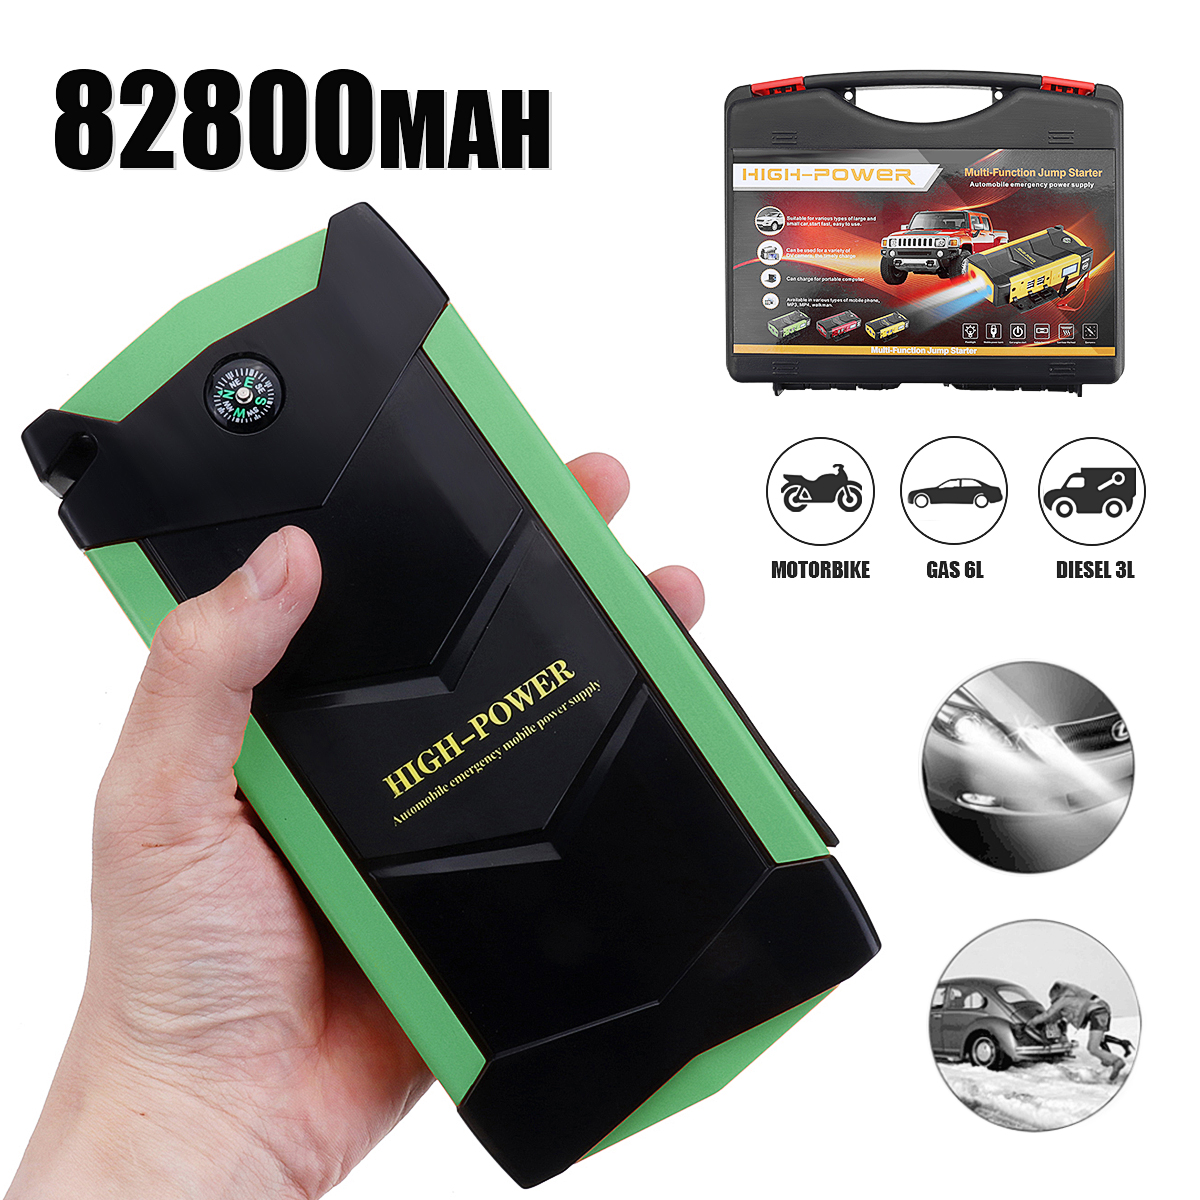 12V 82800mAh 4USB High Power Car Jump Starter Battery Charger Starting Car Booster Power Bank Tool Kit For Auto Starting Device цена